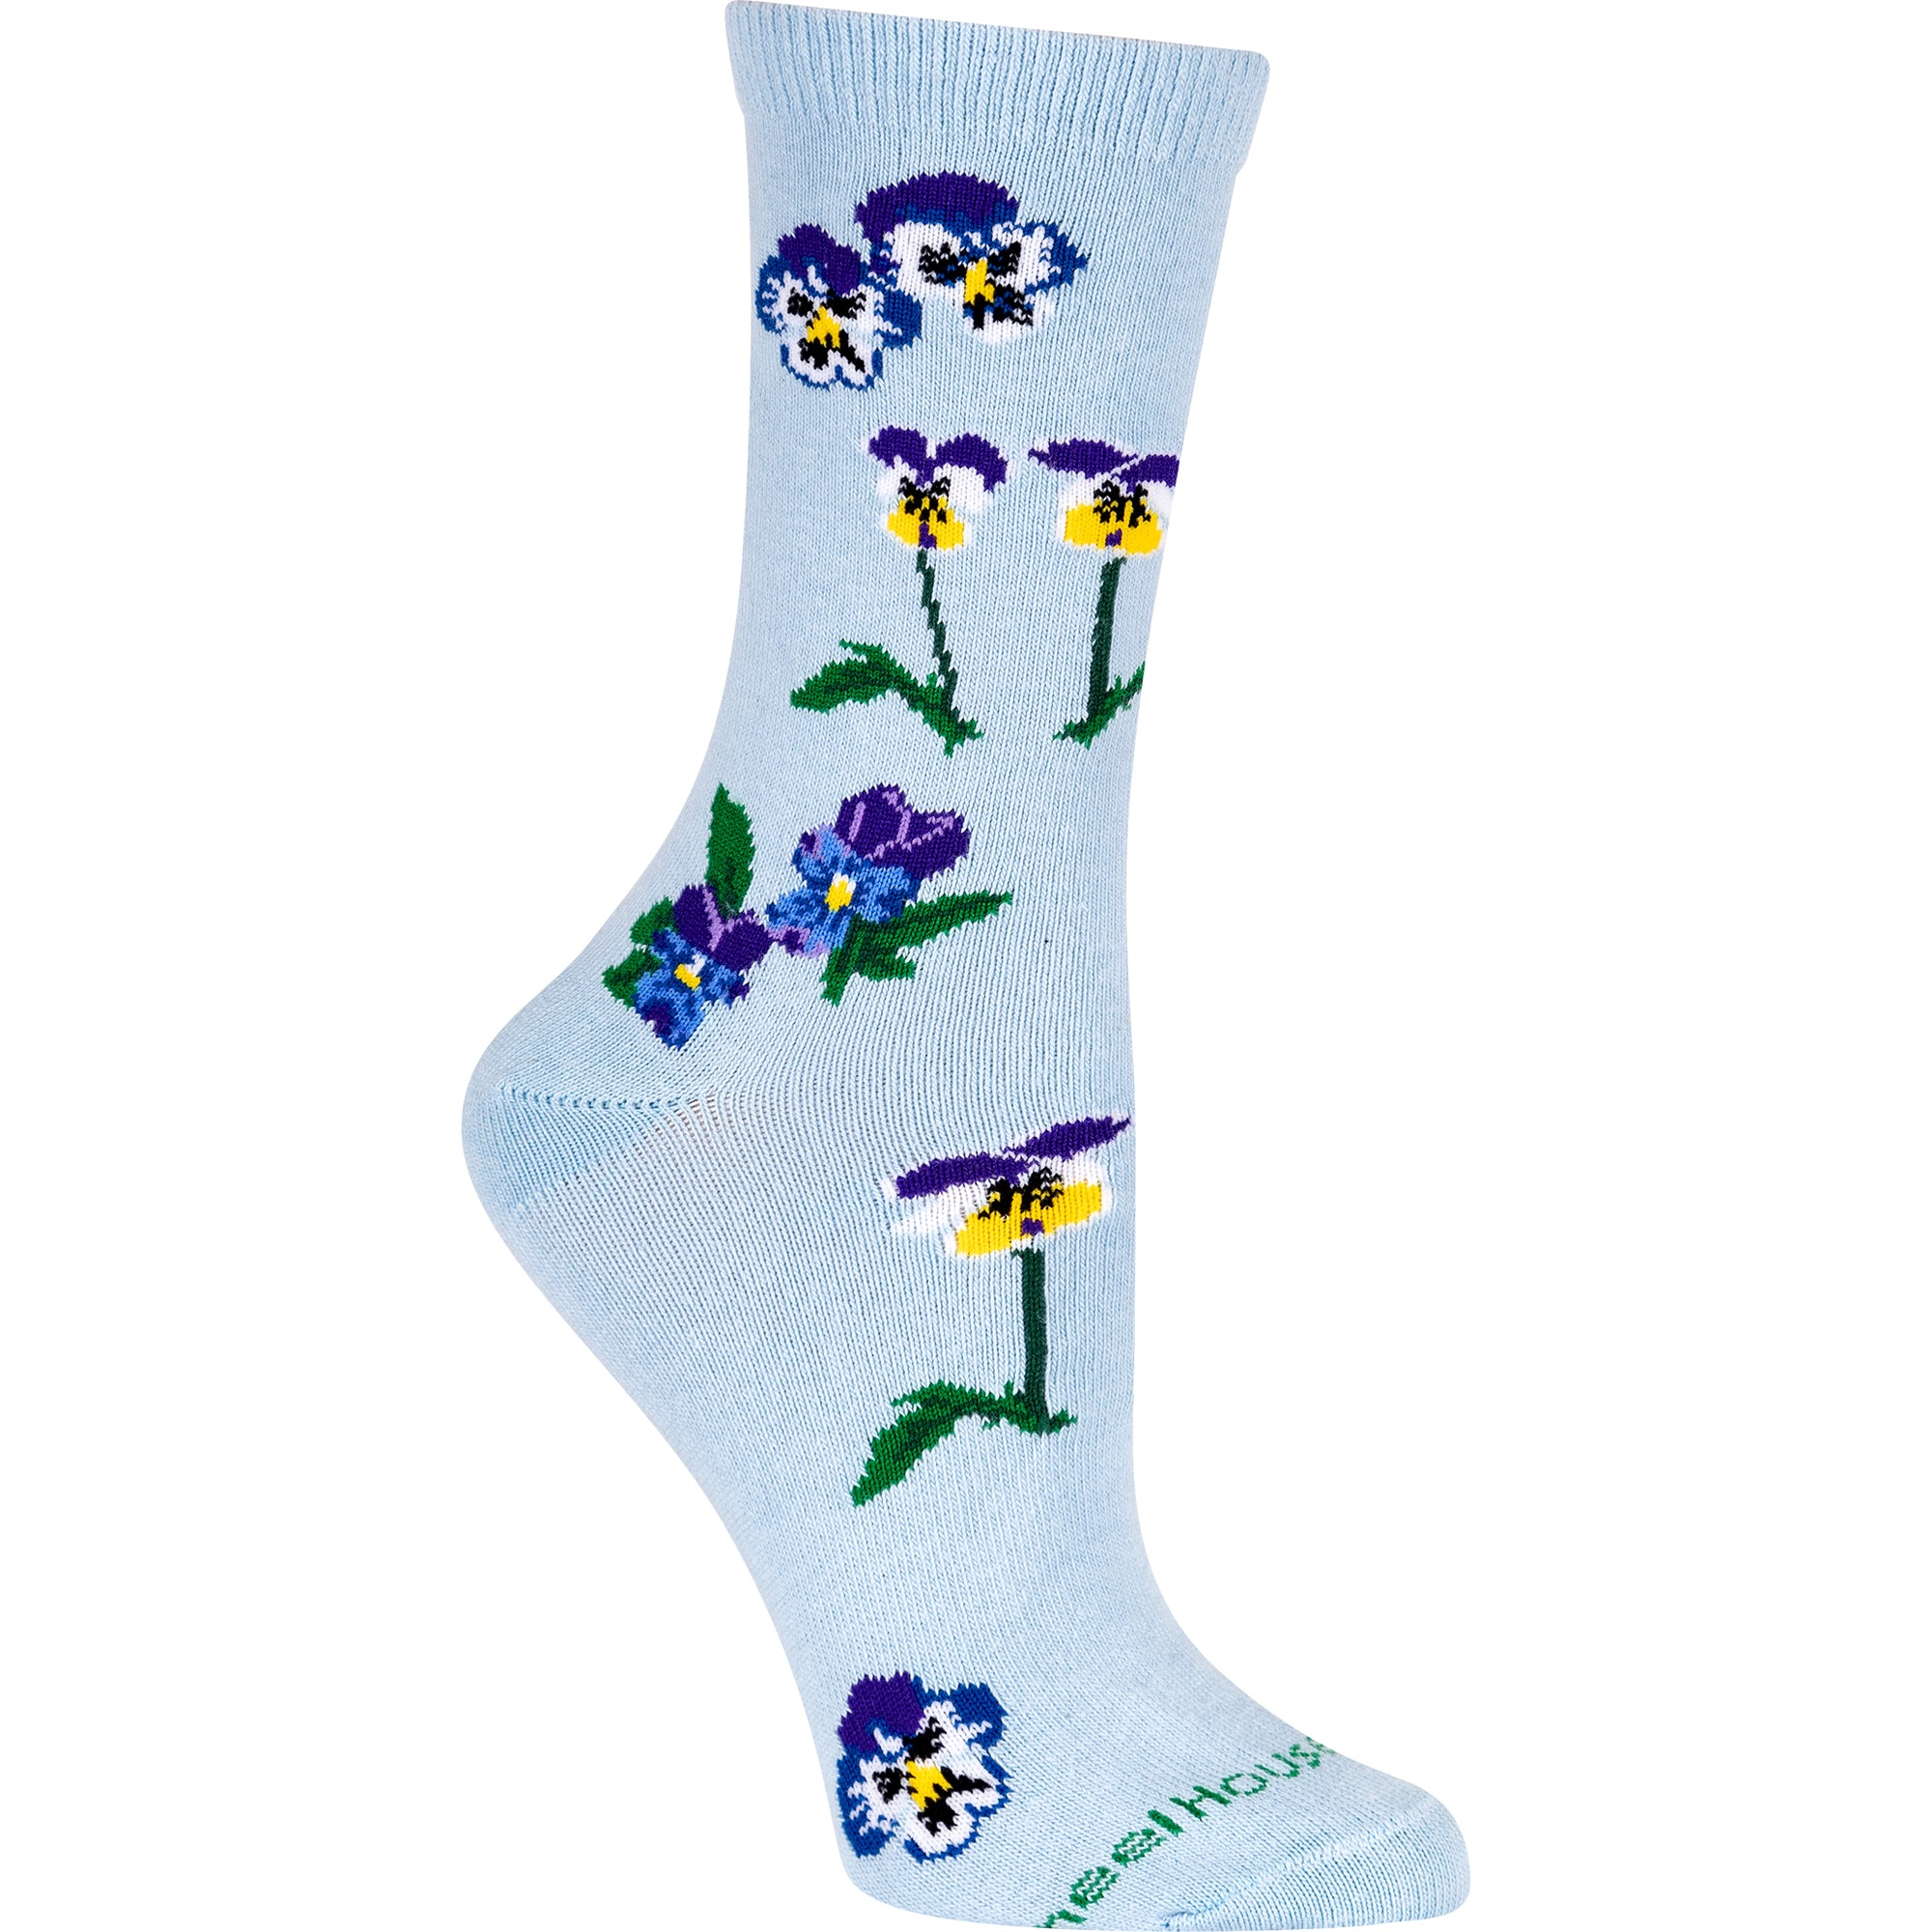 Pansies Crew Socks on Light Blue